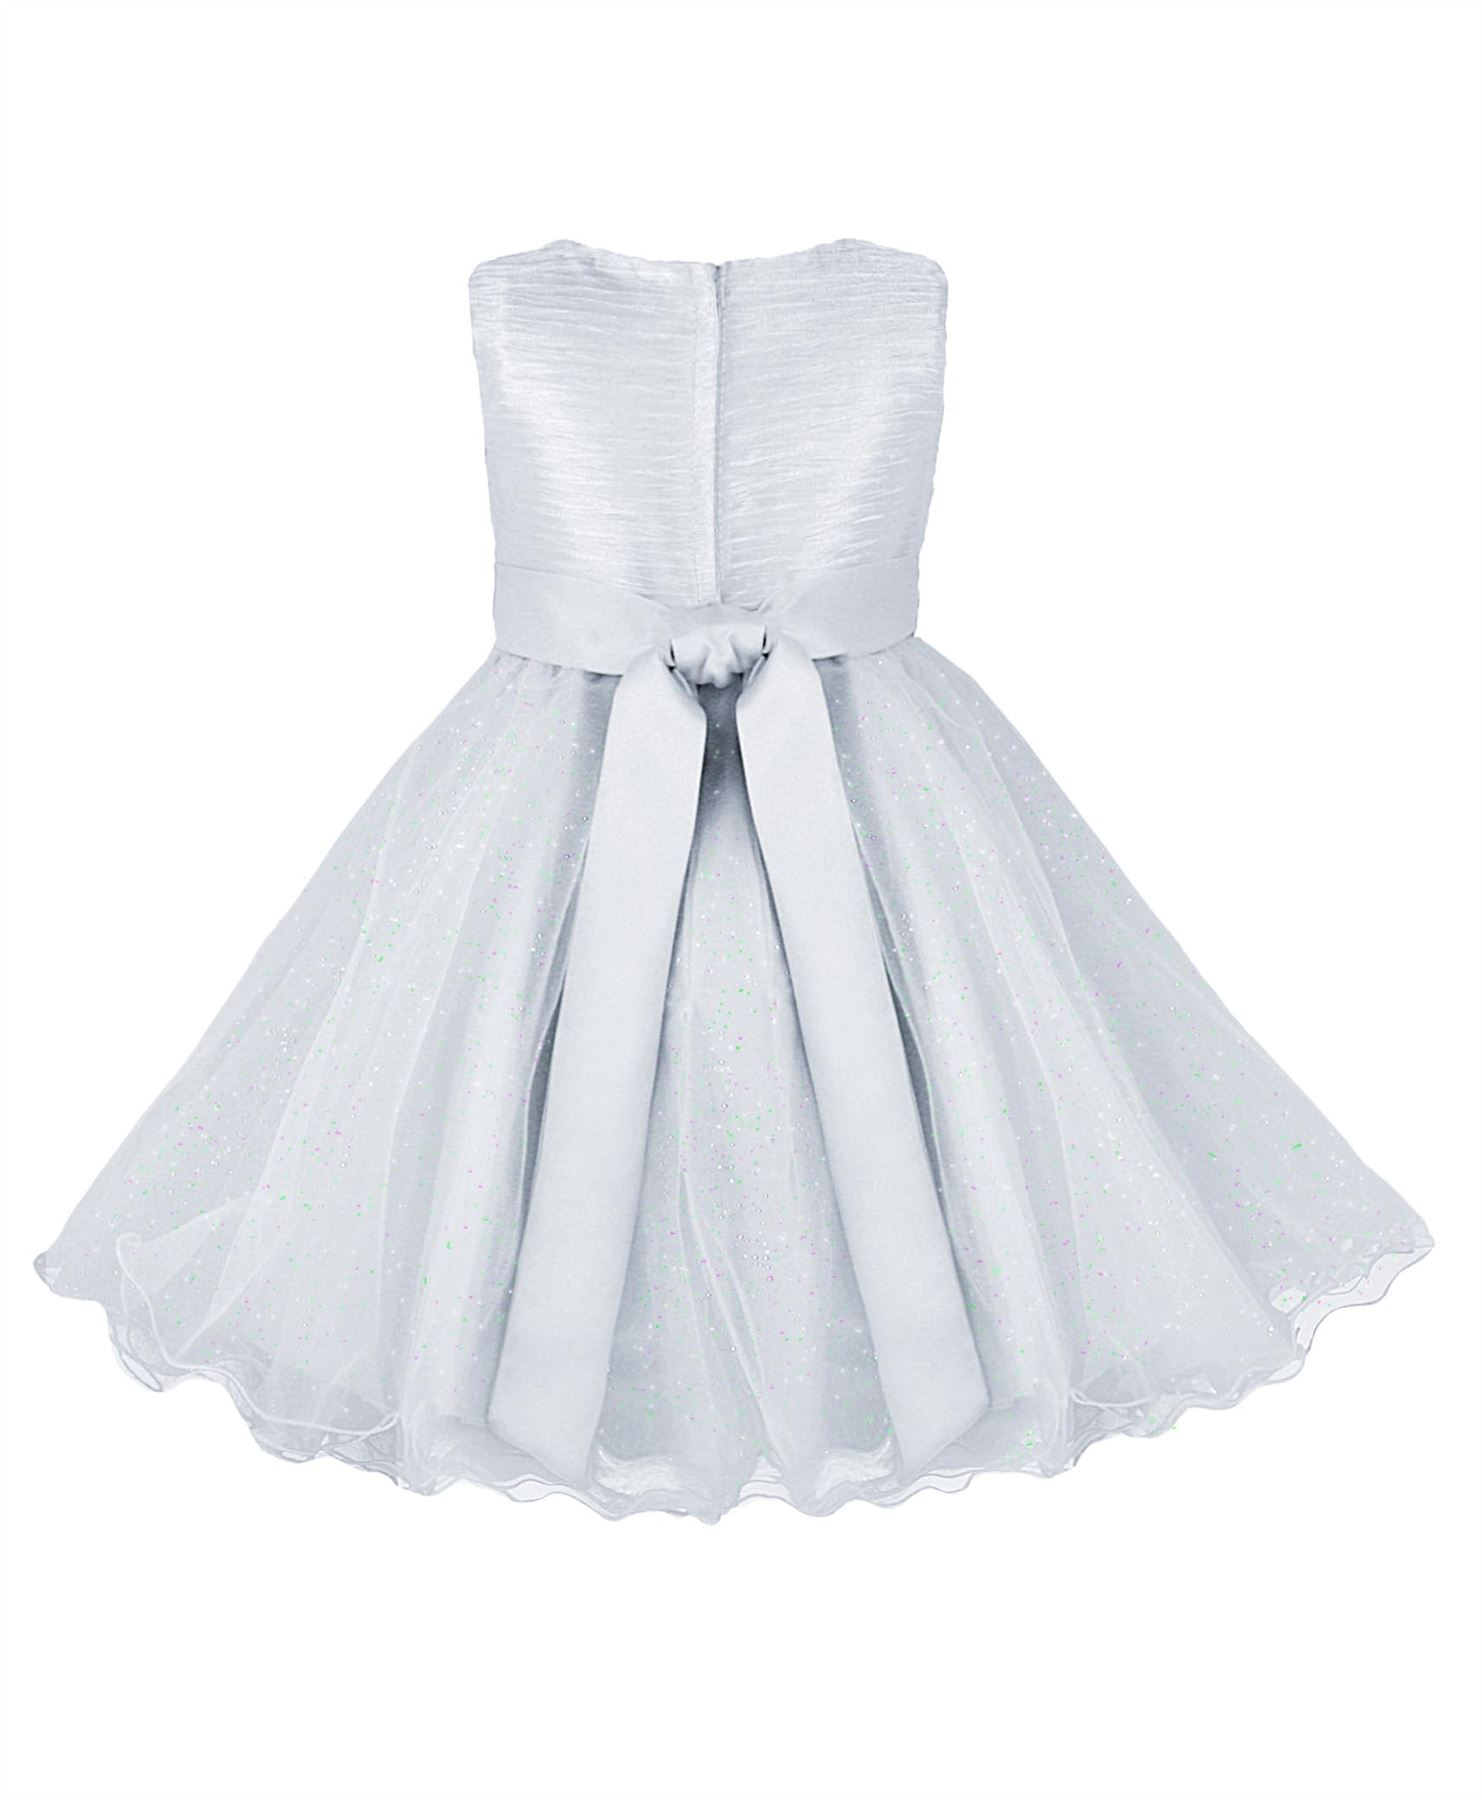 Girls Tulle Party Dress Bow Detail Flower Girl Wedding Pageant